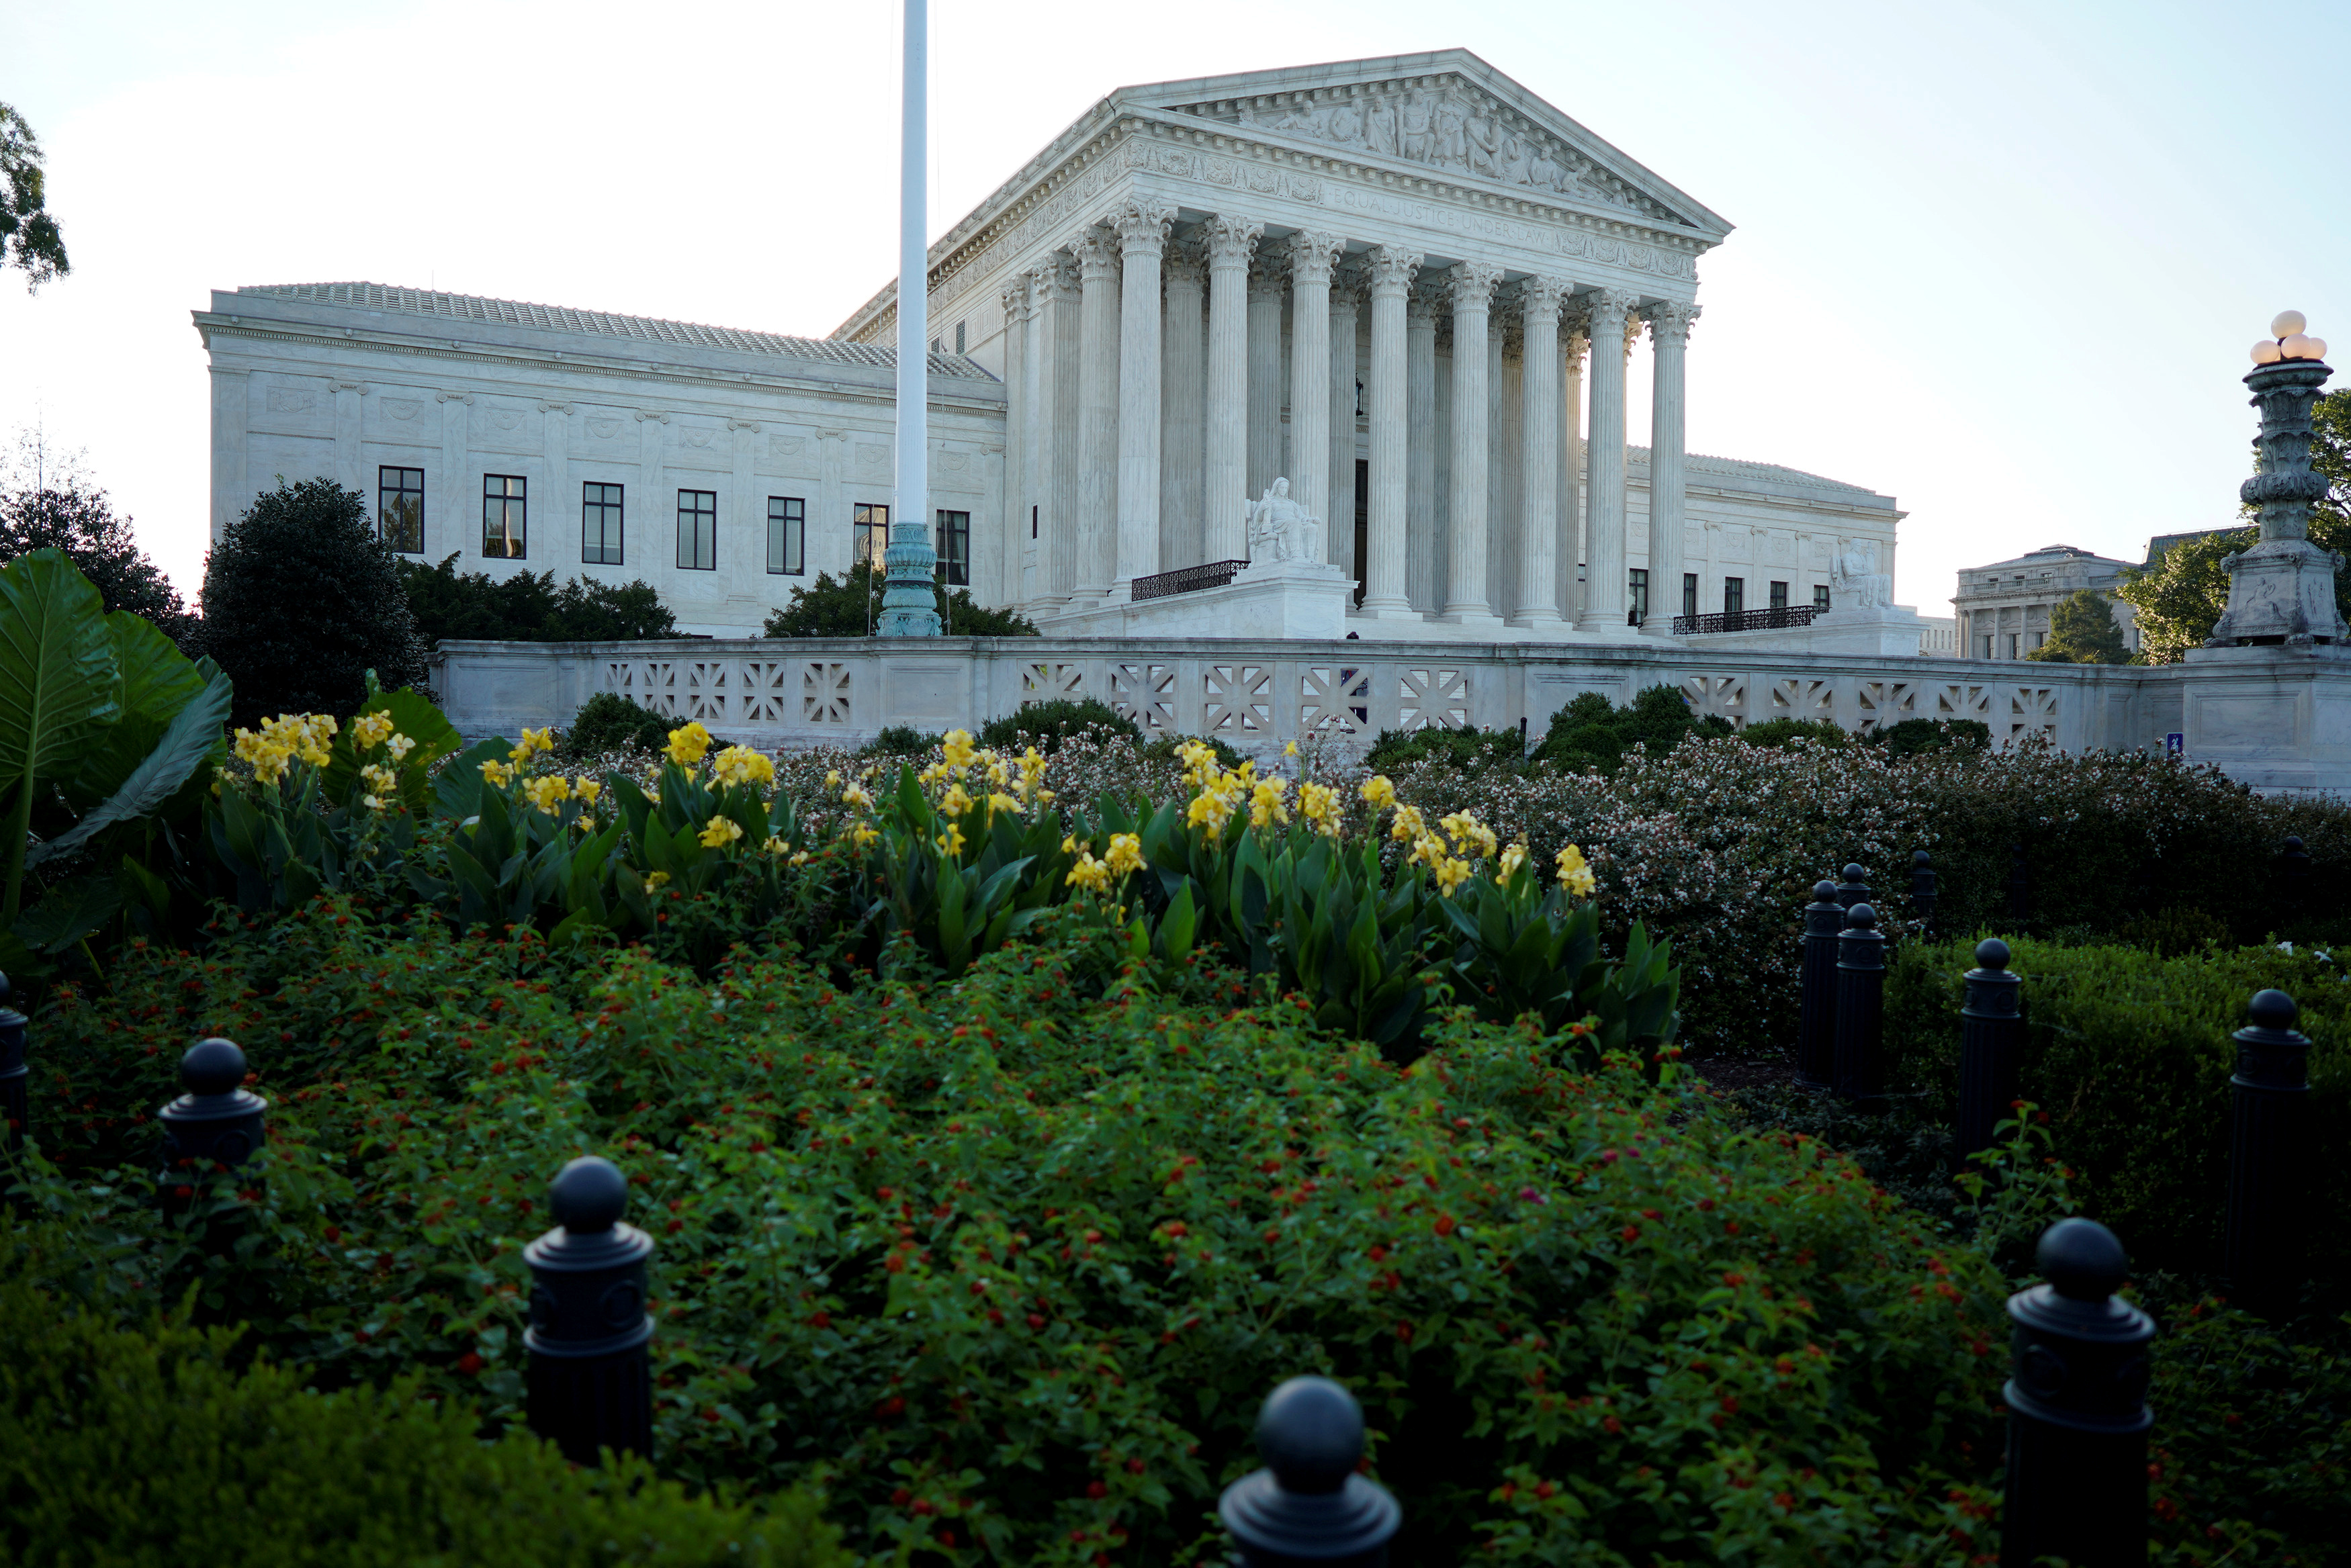 FILE PHOTO: The Supreme Court is seen ahead of the start of it's new term in Washington, U.S., October 1, 2018. REUTERS/Aaron P. Bernstein/File Photo